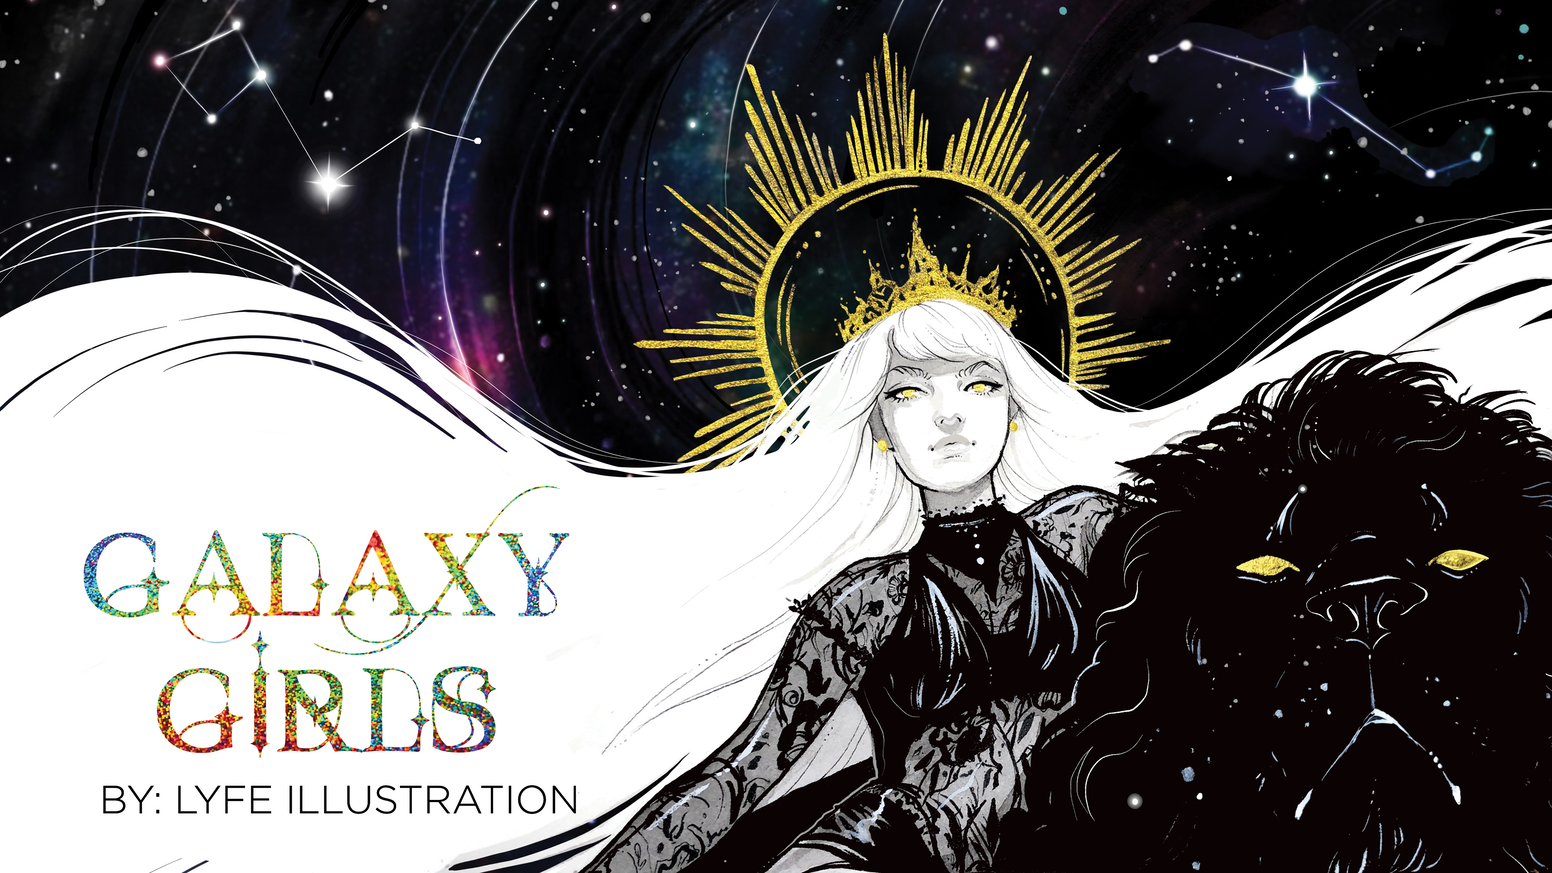 A beautifully detailed art book filled with 31 astrology and constellation based art work by Lyfe Illustration